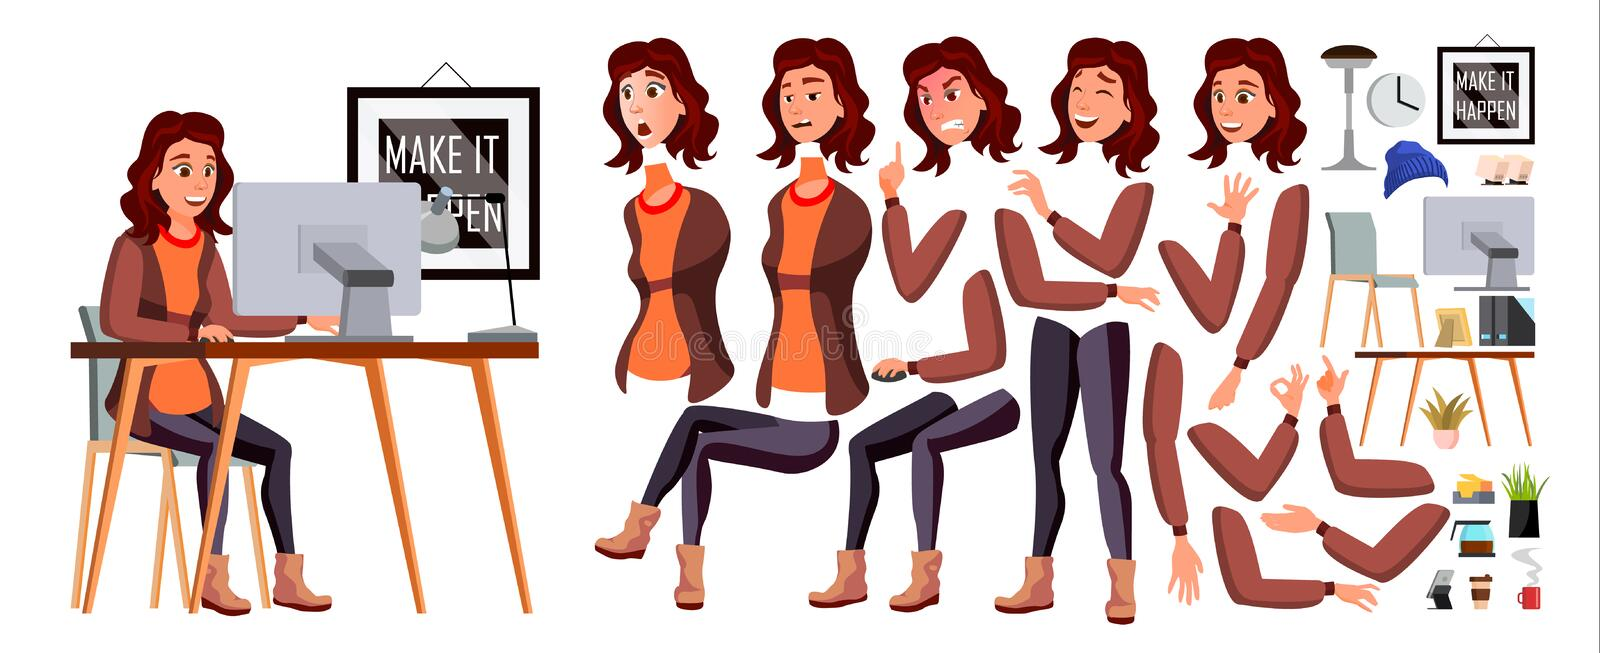 Office Worker Vector. Woman. Happy Clerk, Servant, Employee. Business Human. Face Emotions, Various Gestures. Animation. Creation Set Character Illustration royalty free illustration